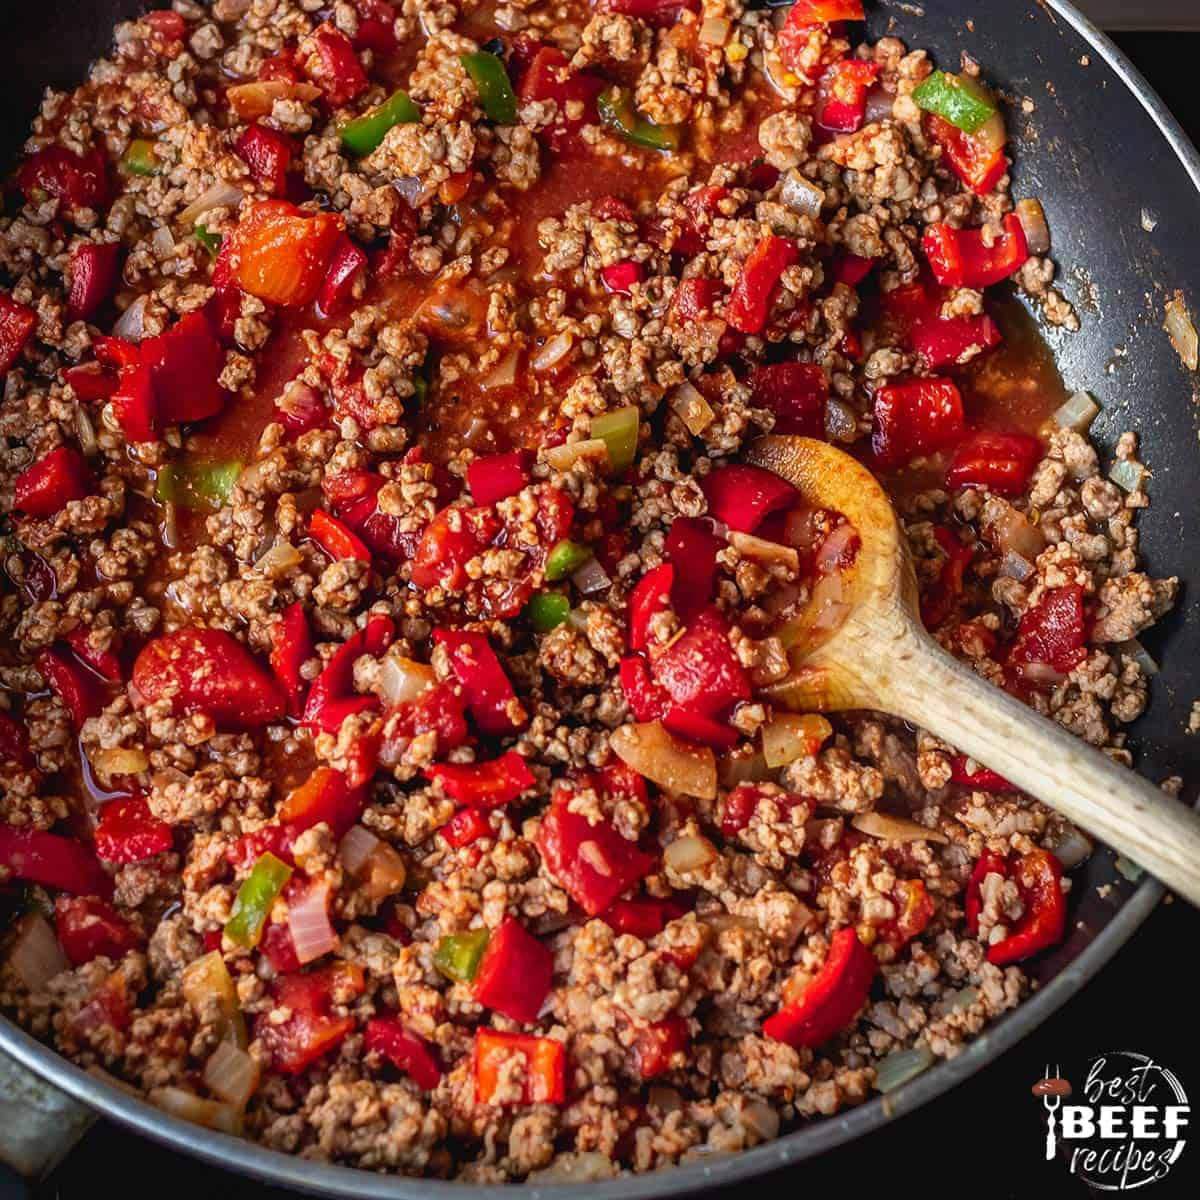 Ground beef cooking in a skillet with seasonings and peppers